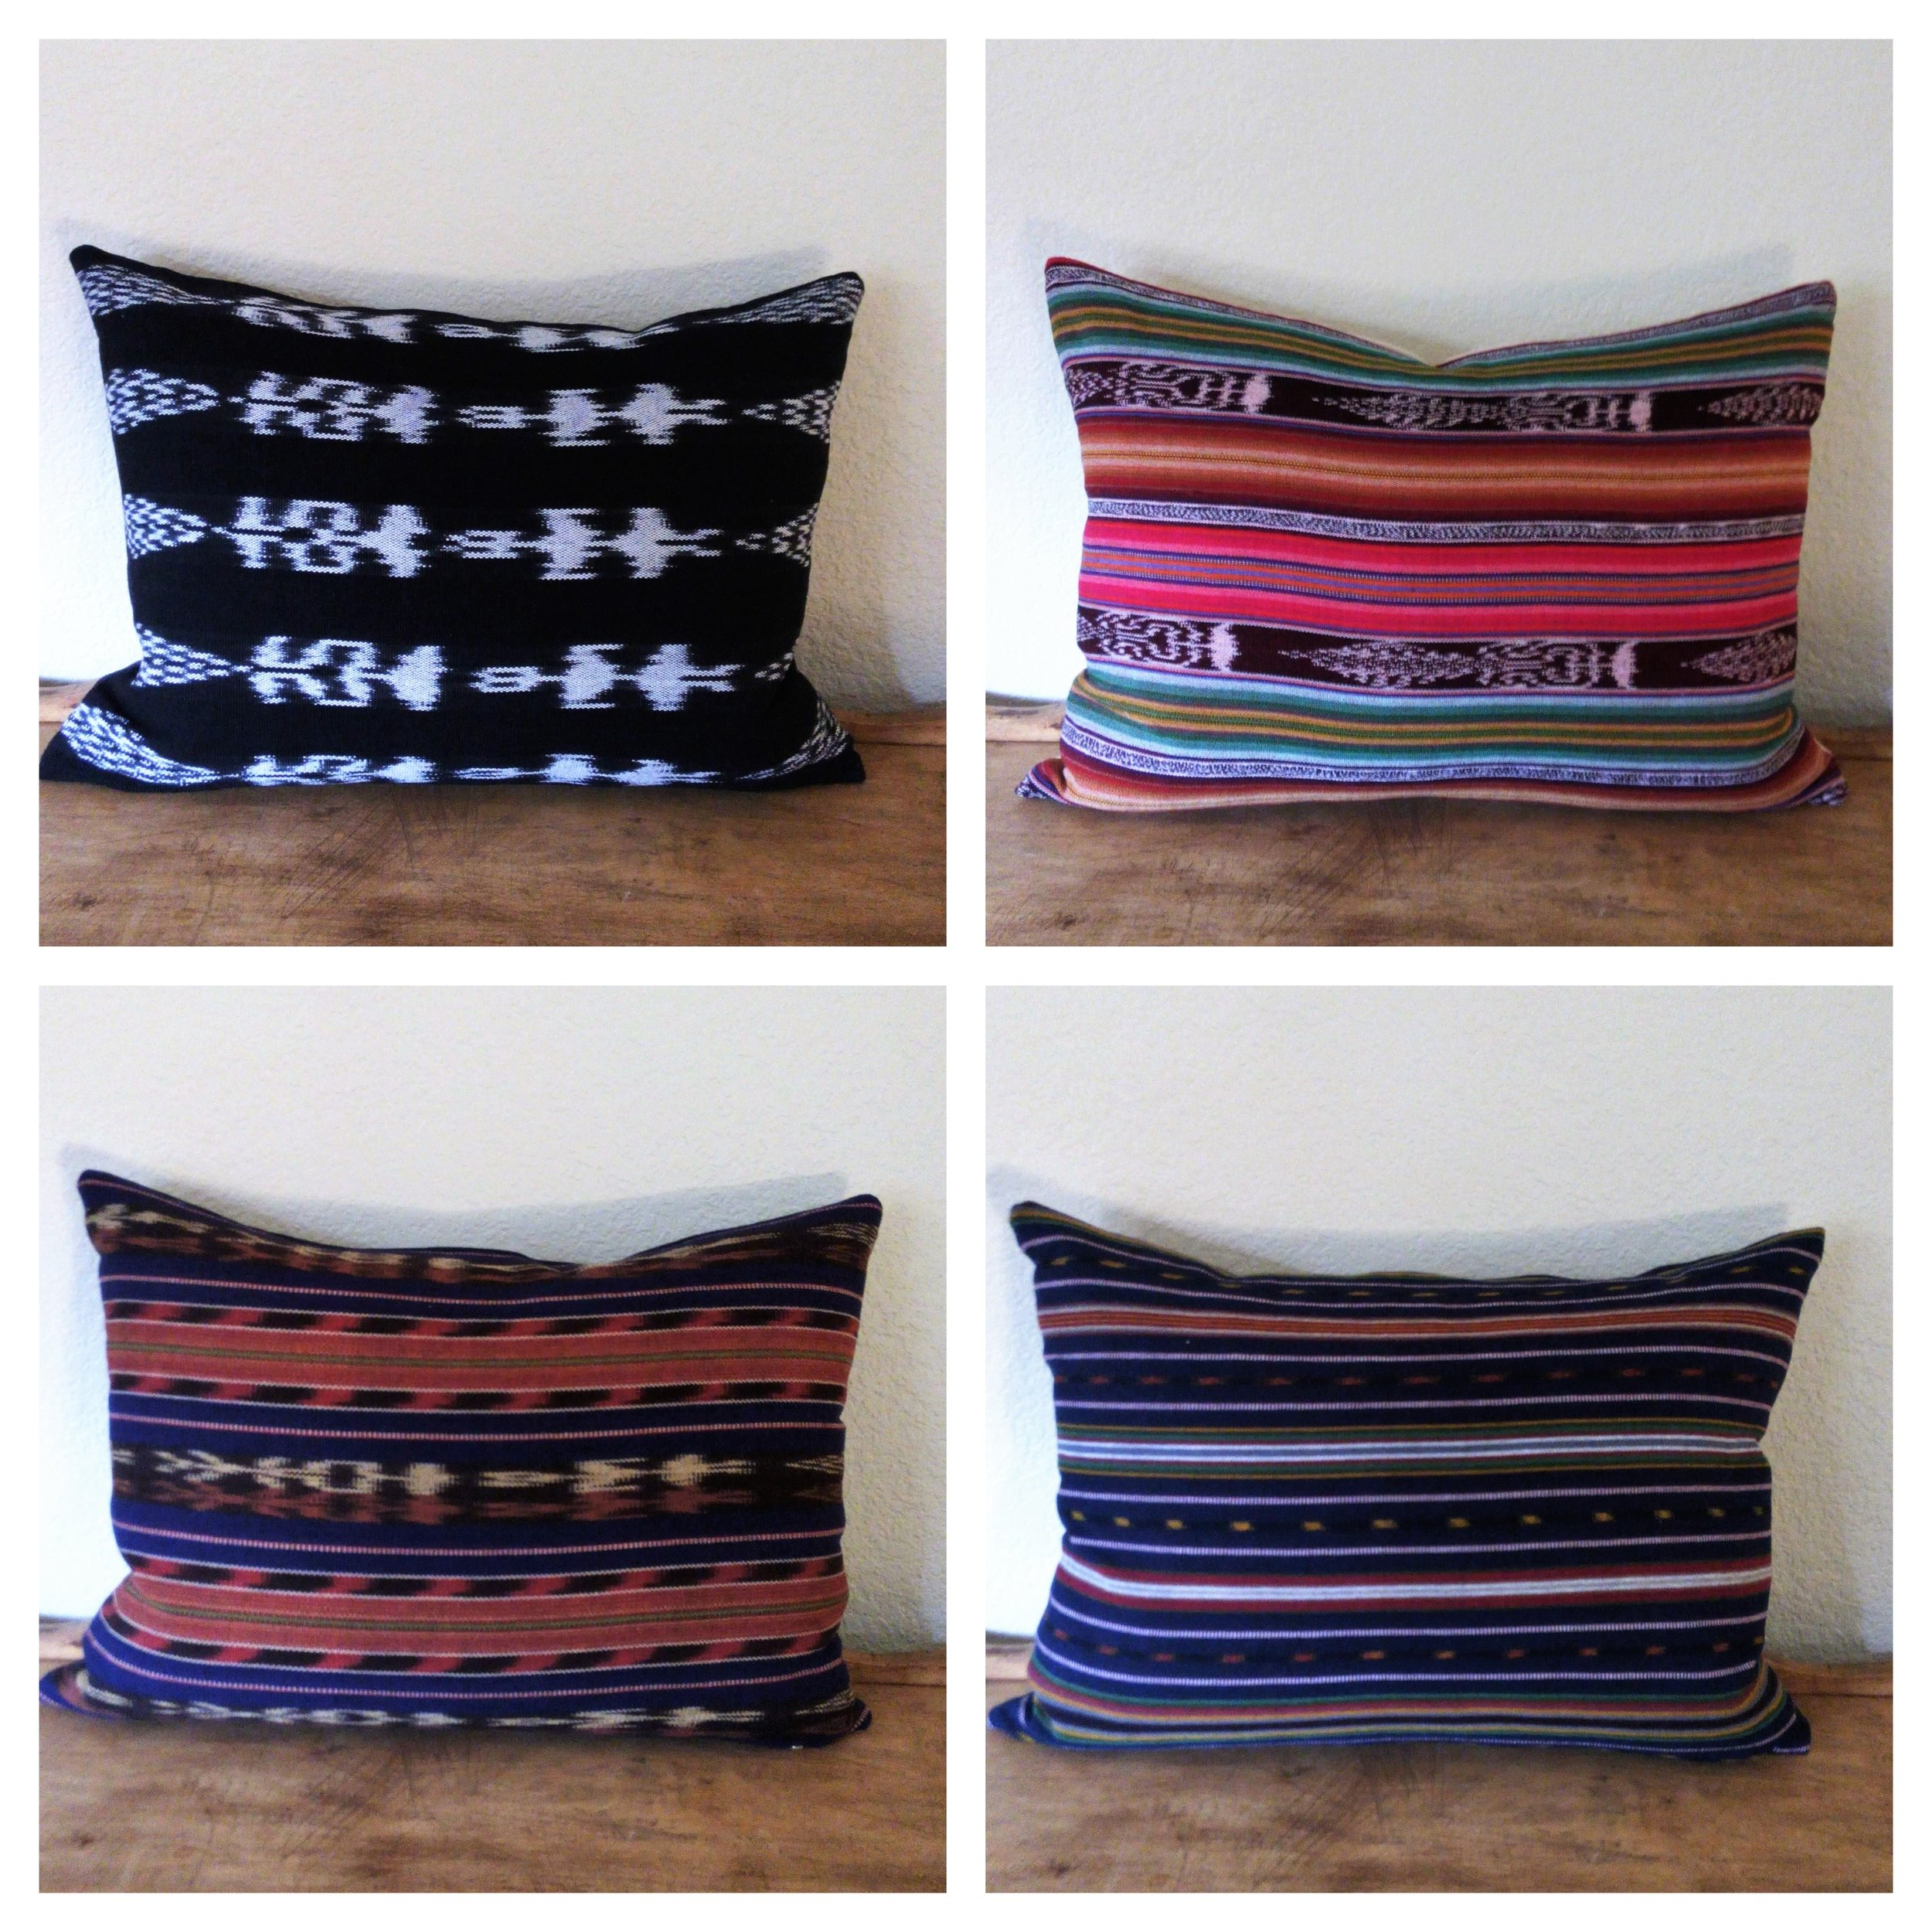 "Justa - Fair-trade hand woven cottons from Guatemala, backed with sturdy cotton. Constructed with an exposed brass zipper. Wash and dry cool.14"" x 20"" - $35Colors: black/white ikat, fuchsia stripe, orange/brown stripe, navy stripe"